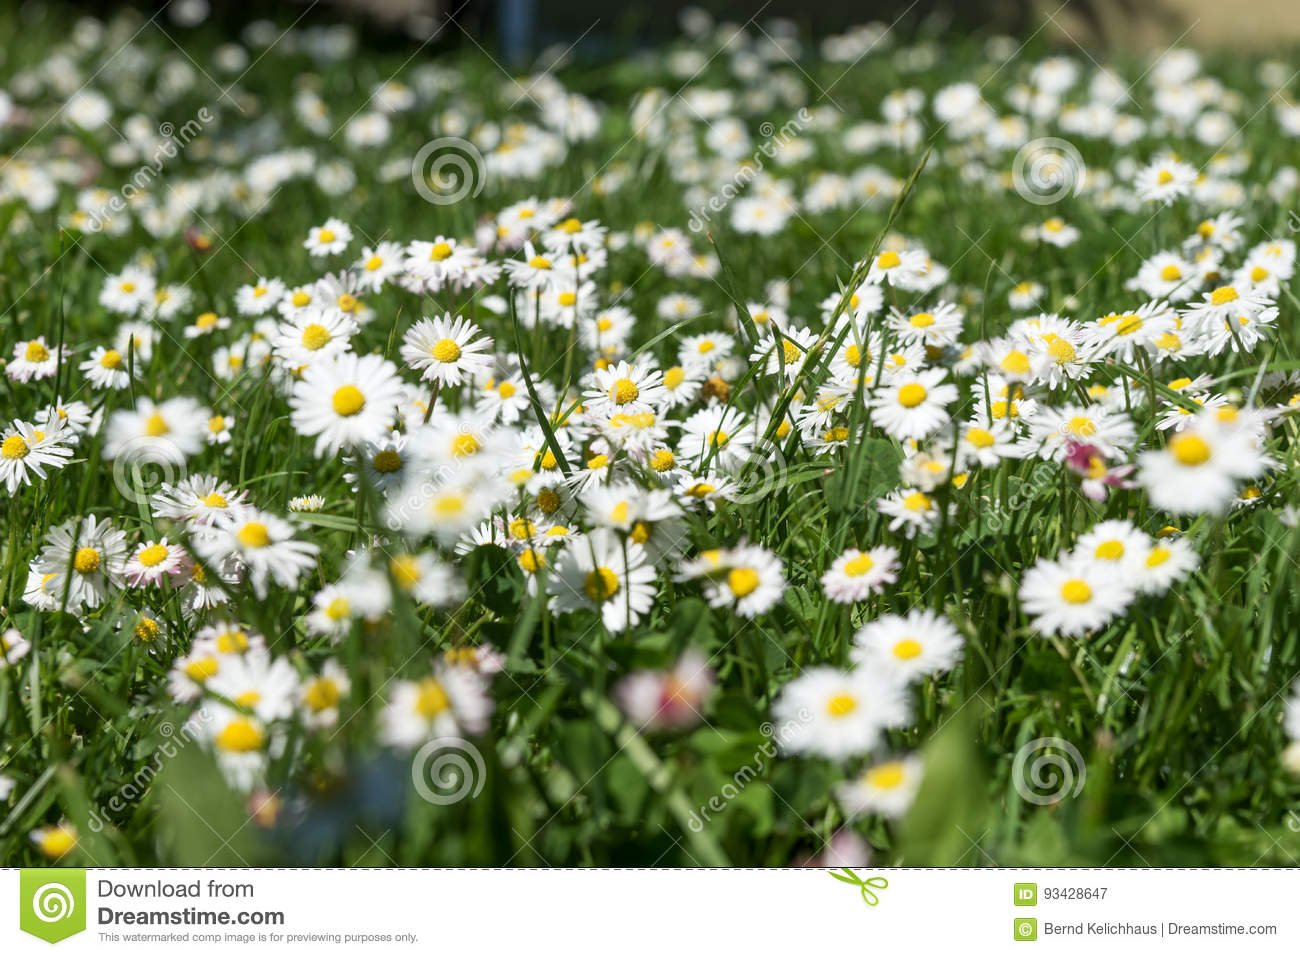 Field of daisy flowers bellis perennis stock image image of download comp izmirmasajfo